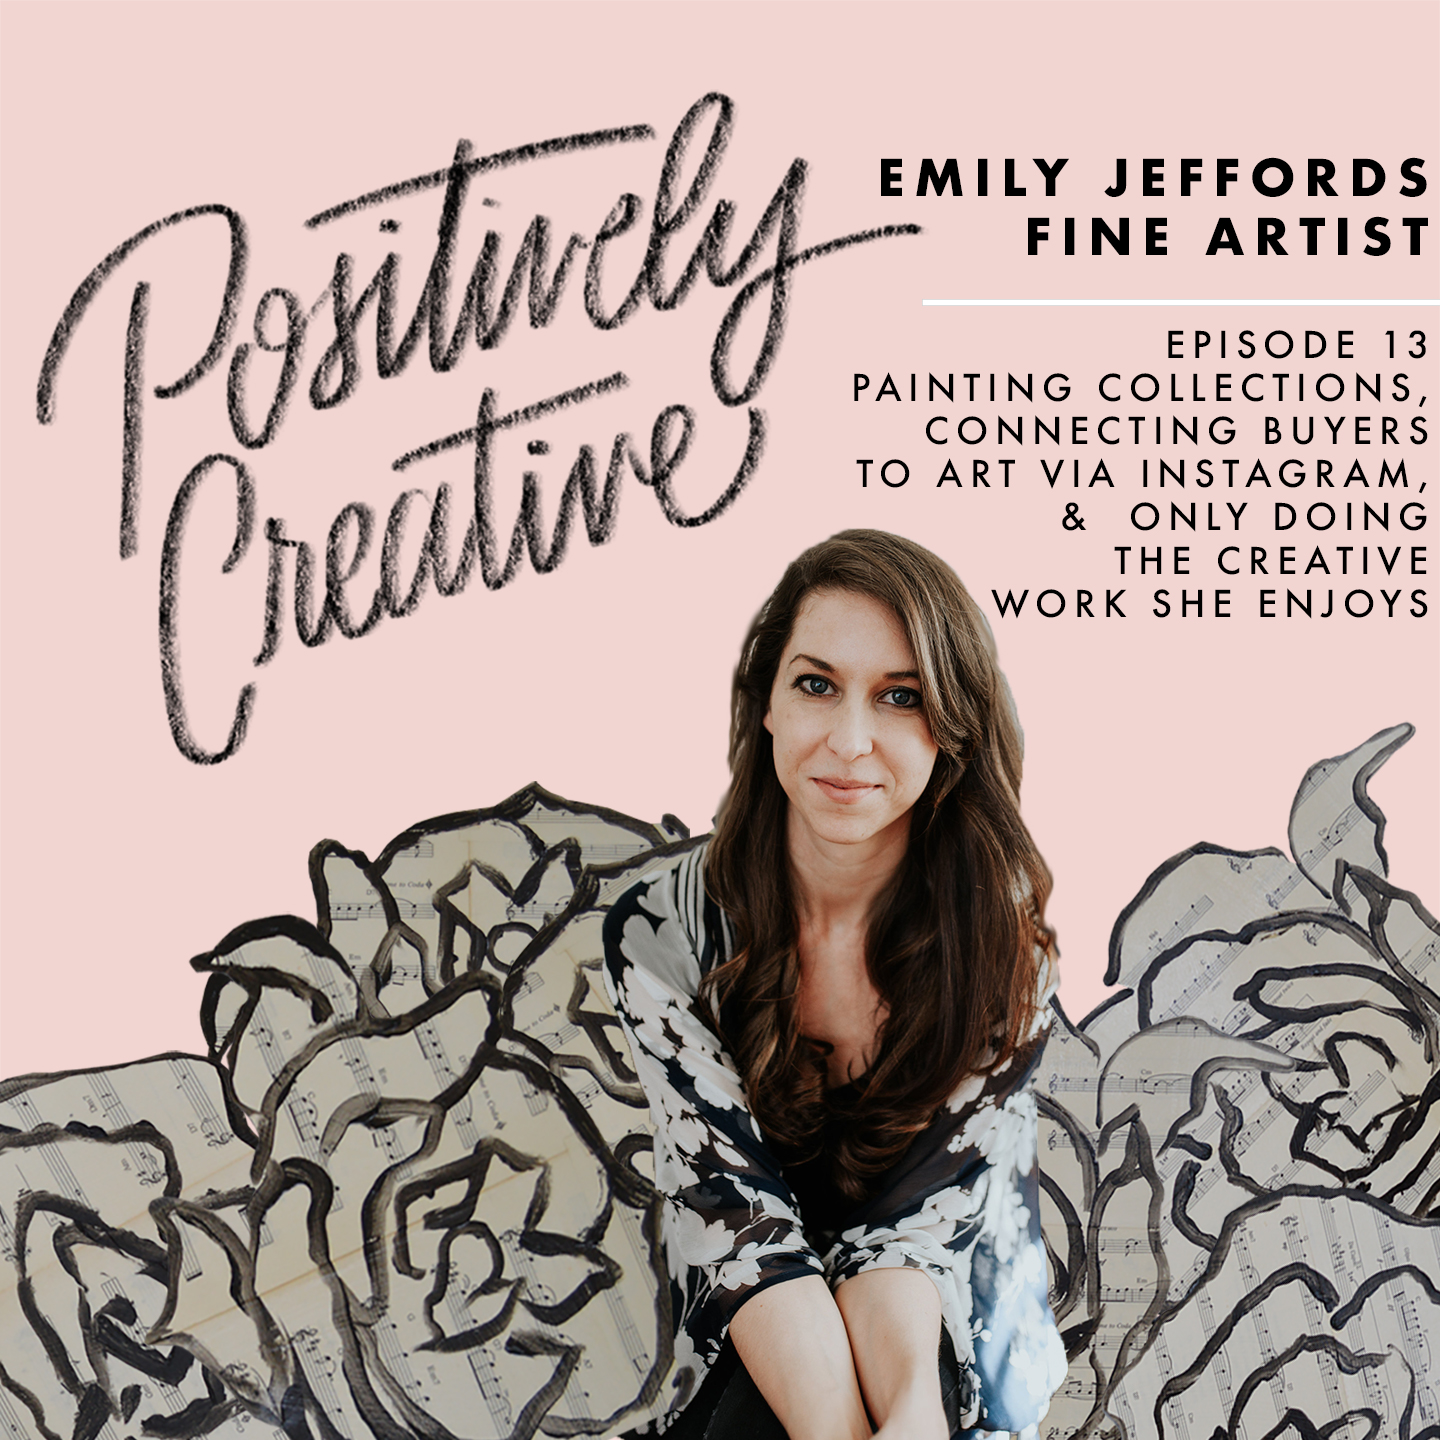 emily jeffords